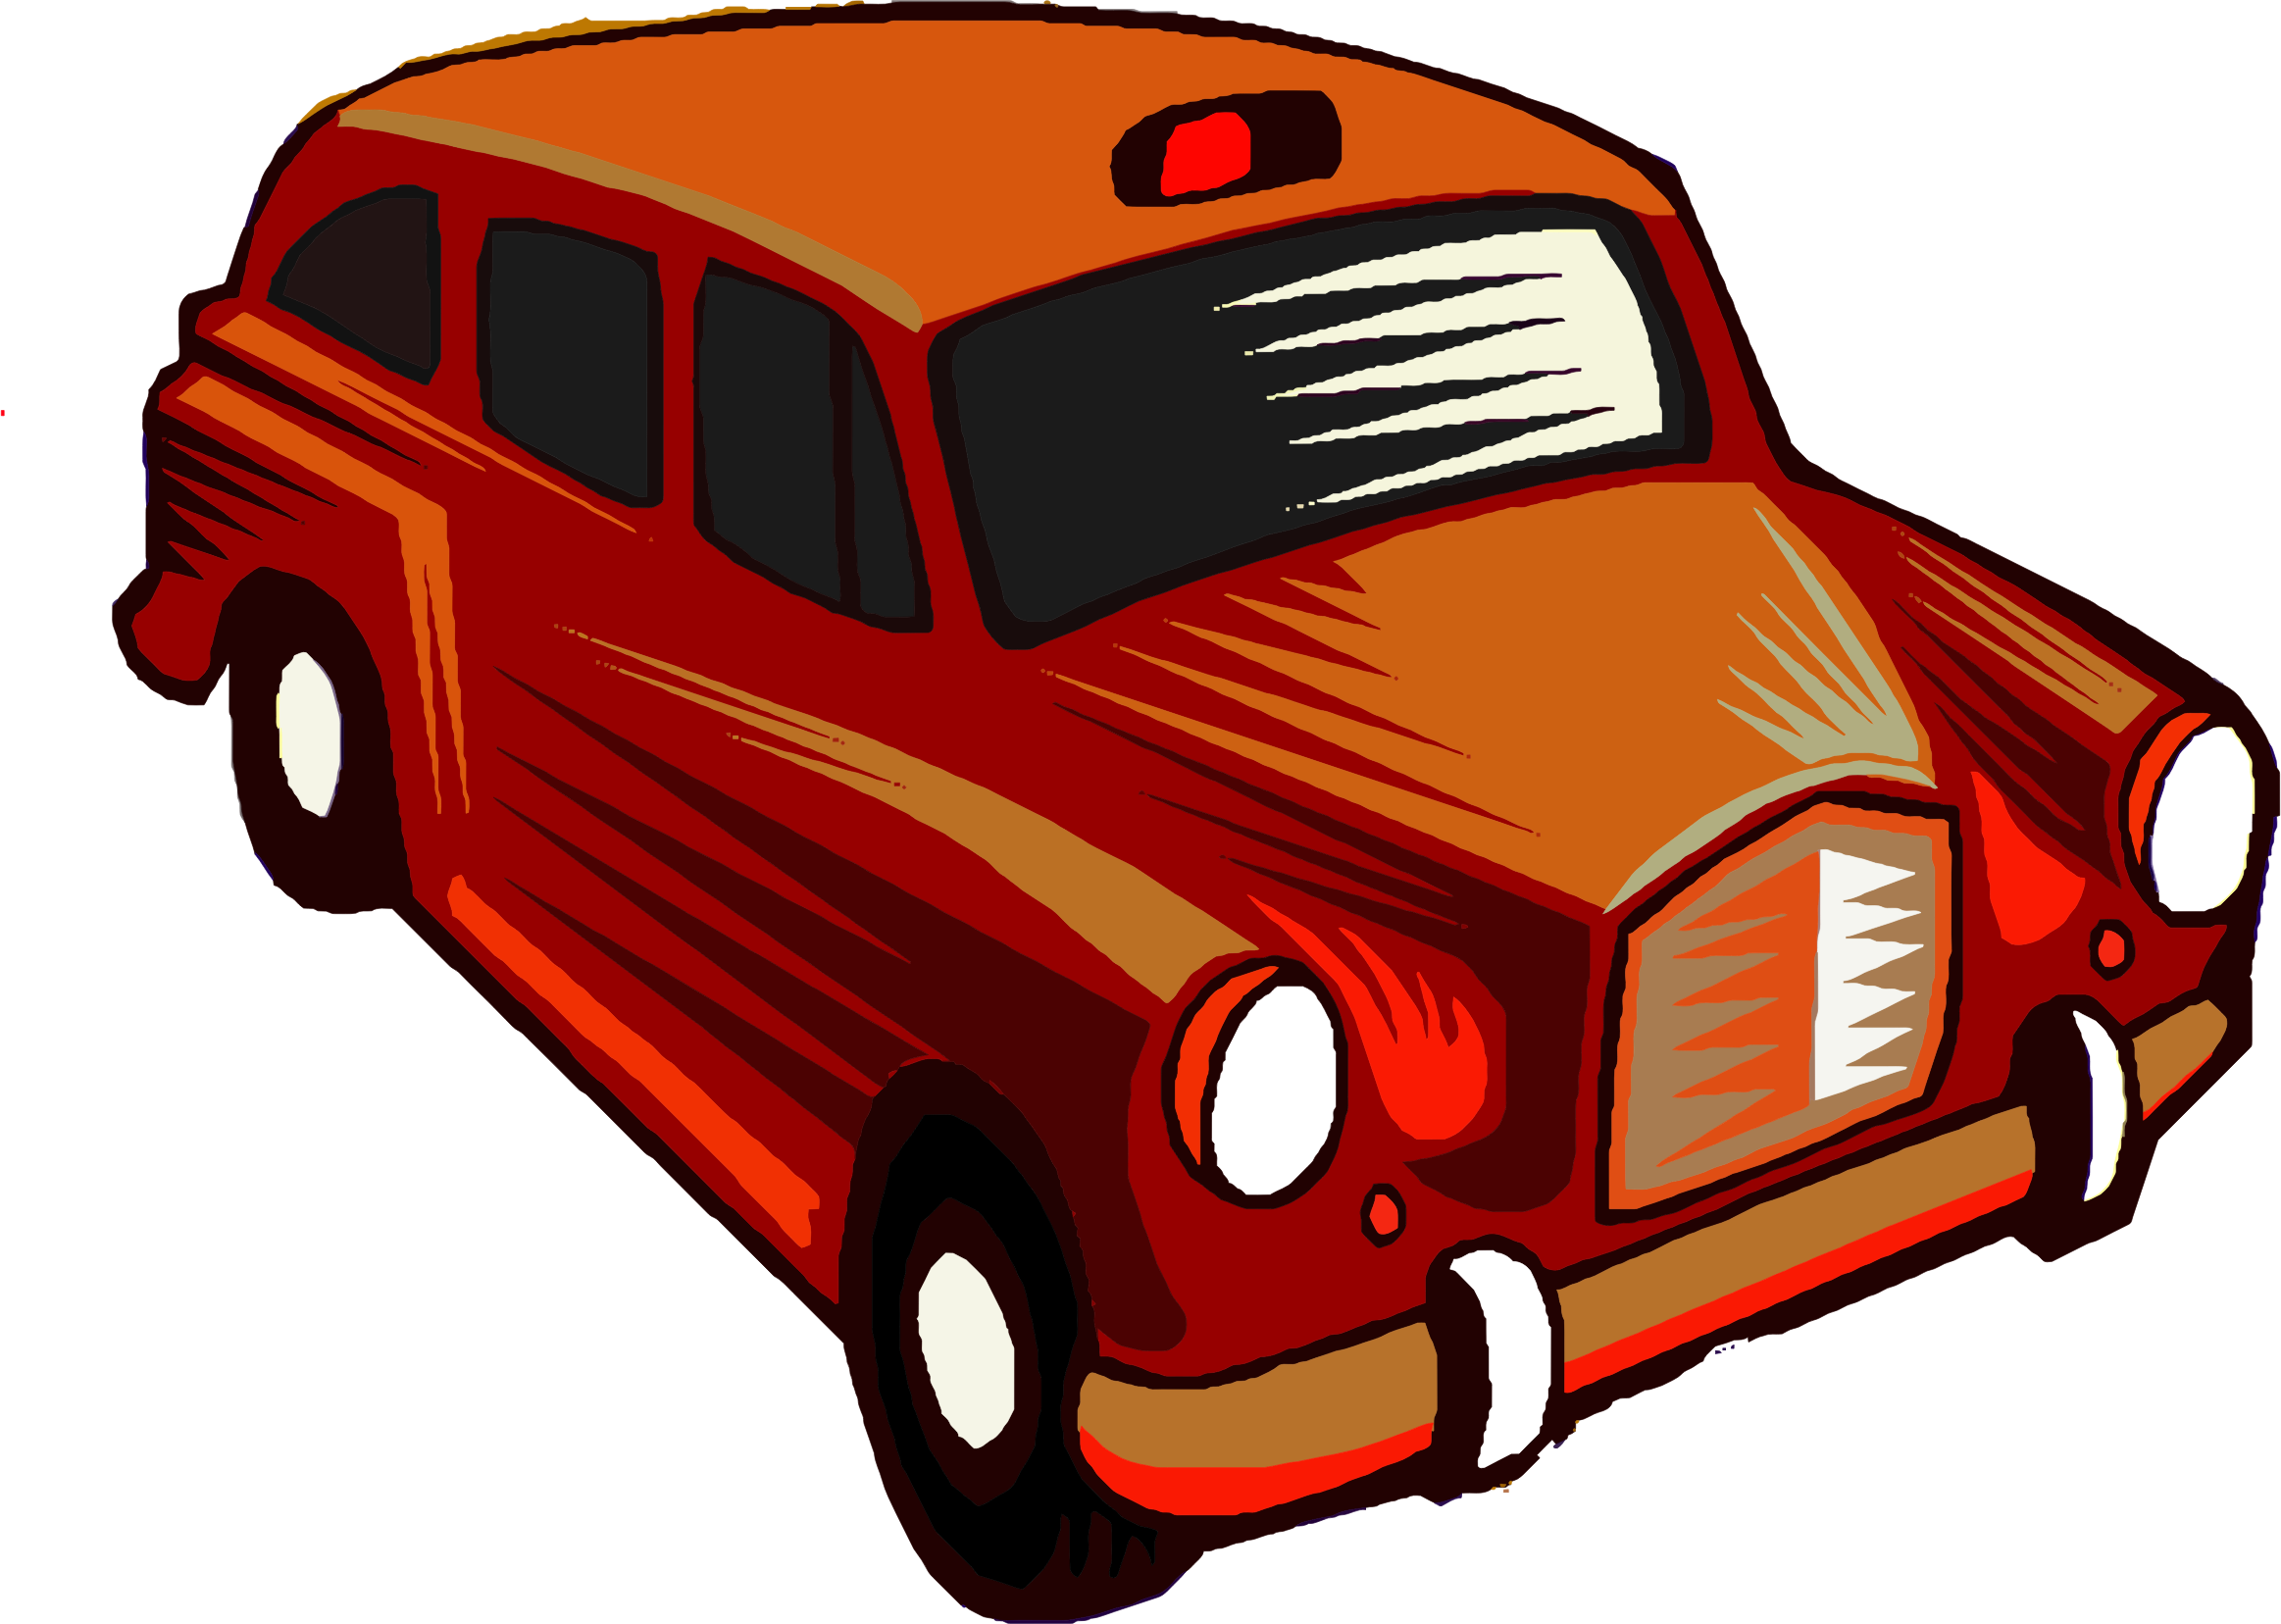 Taxi car clipart image royalty free Clipart - Red Taxi Cab image royalty free